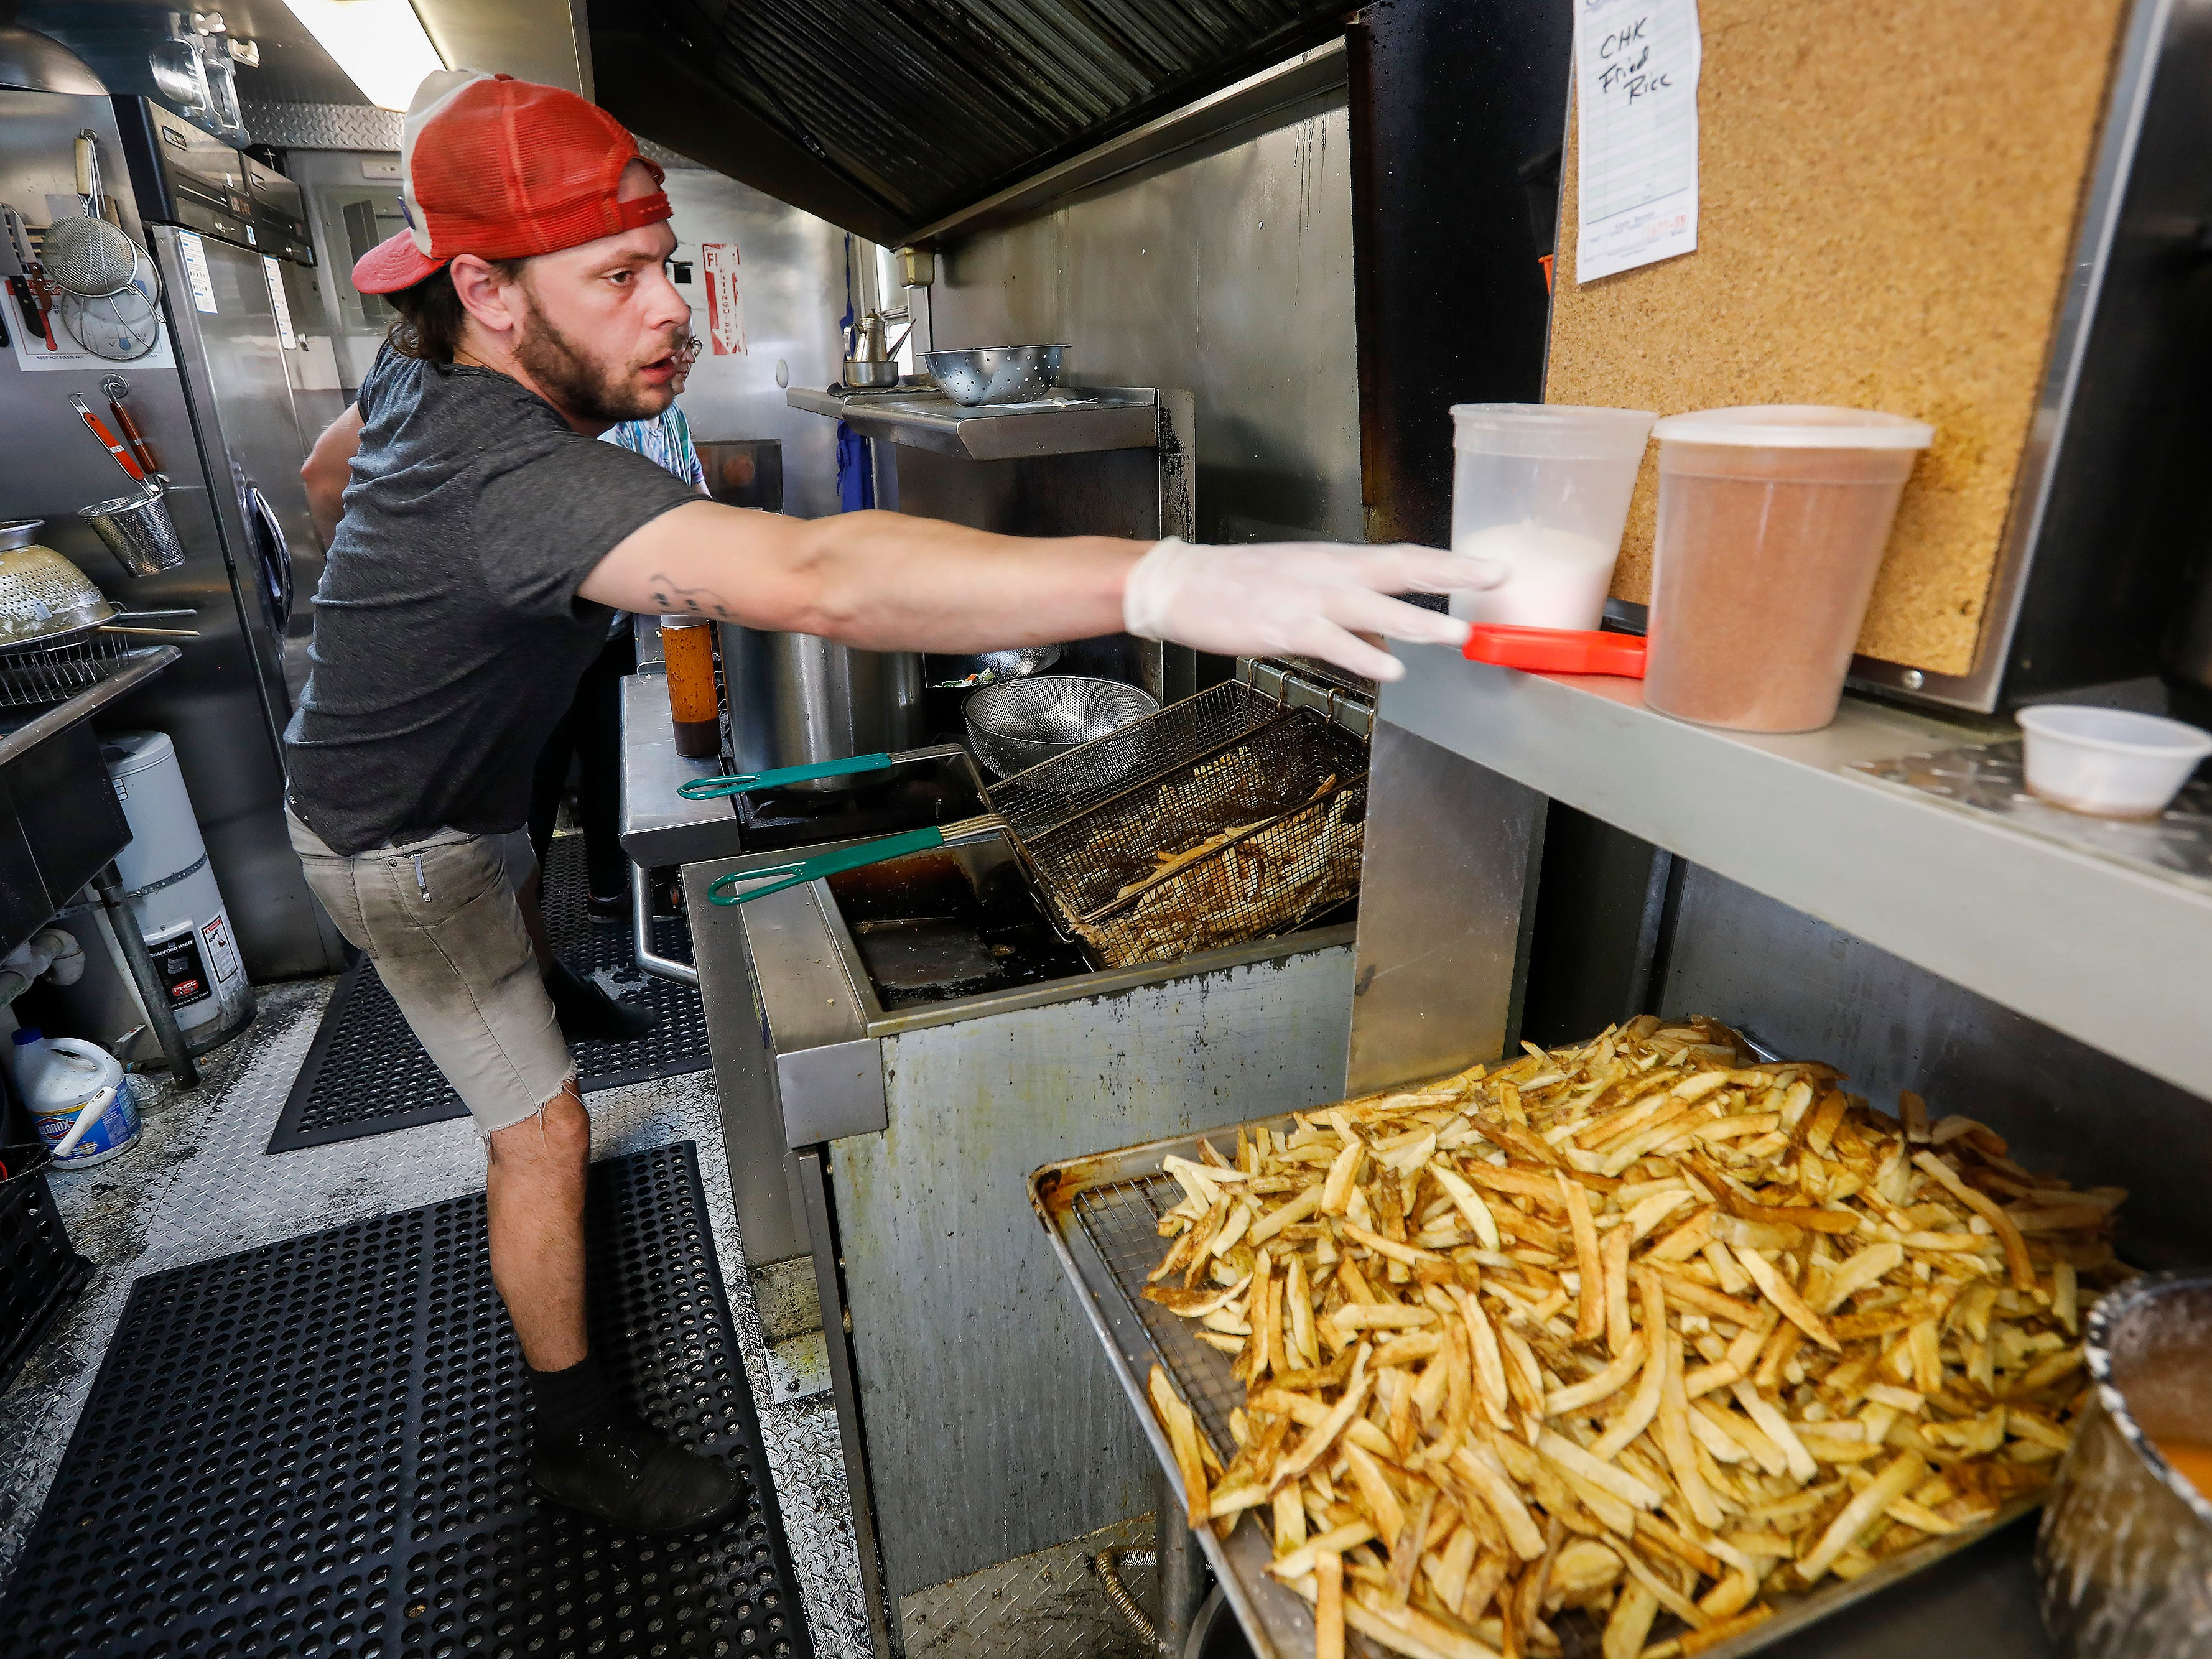 Joe Still reaches for a meat thermometer while working in the kitchen of Skully's Food Truck at the corner of Cherry Street and Pickwick Avenue on Wednesday, May 1, 2019. Skully's will be moving inside into the former Josh Mitchell Art Gallery building.